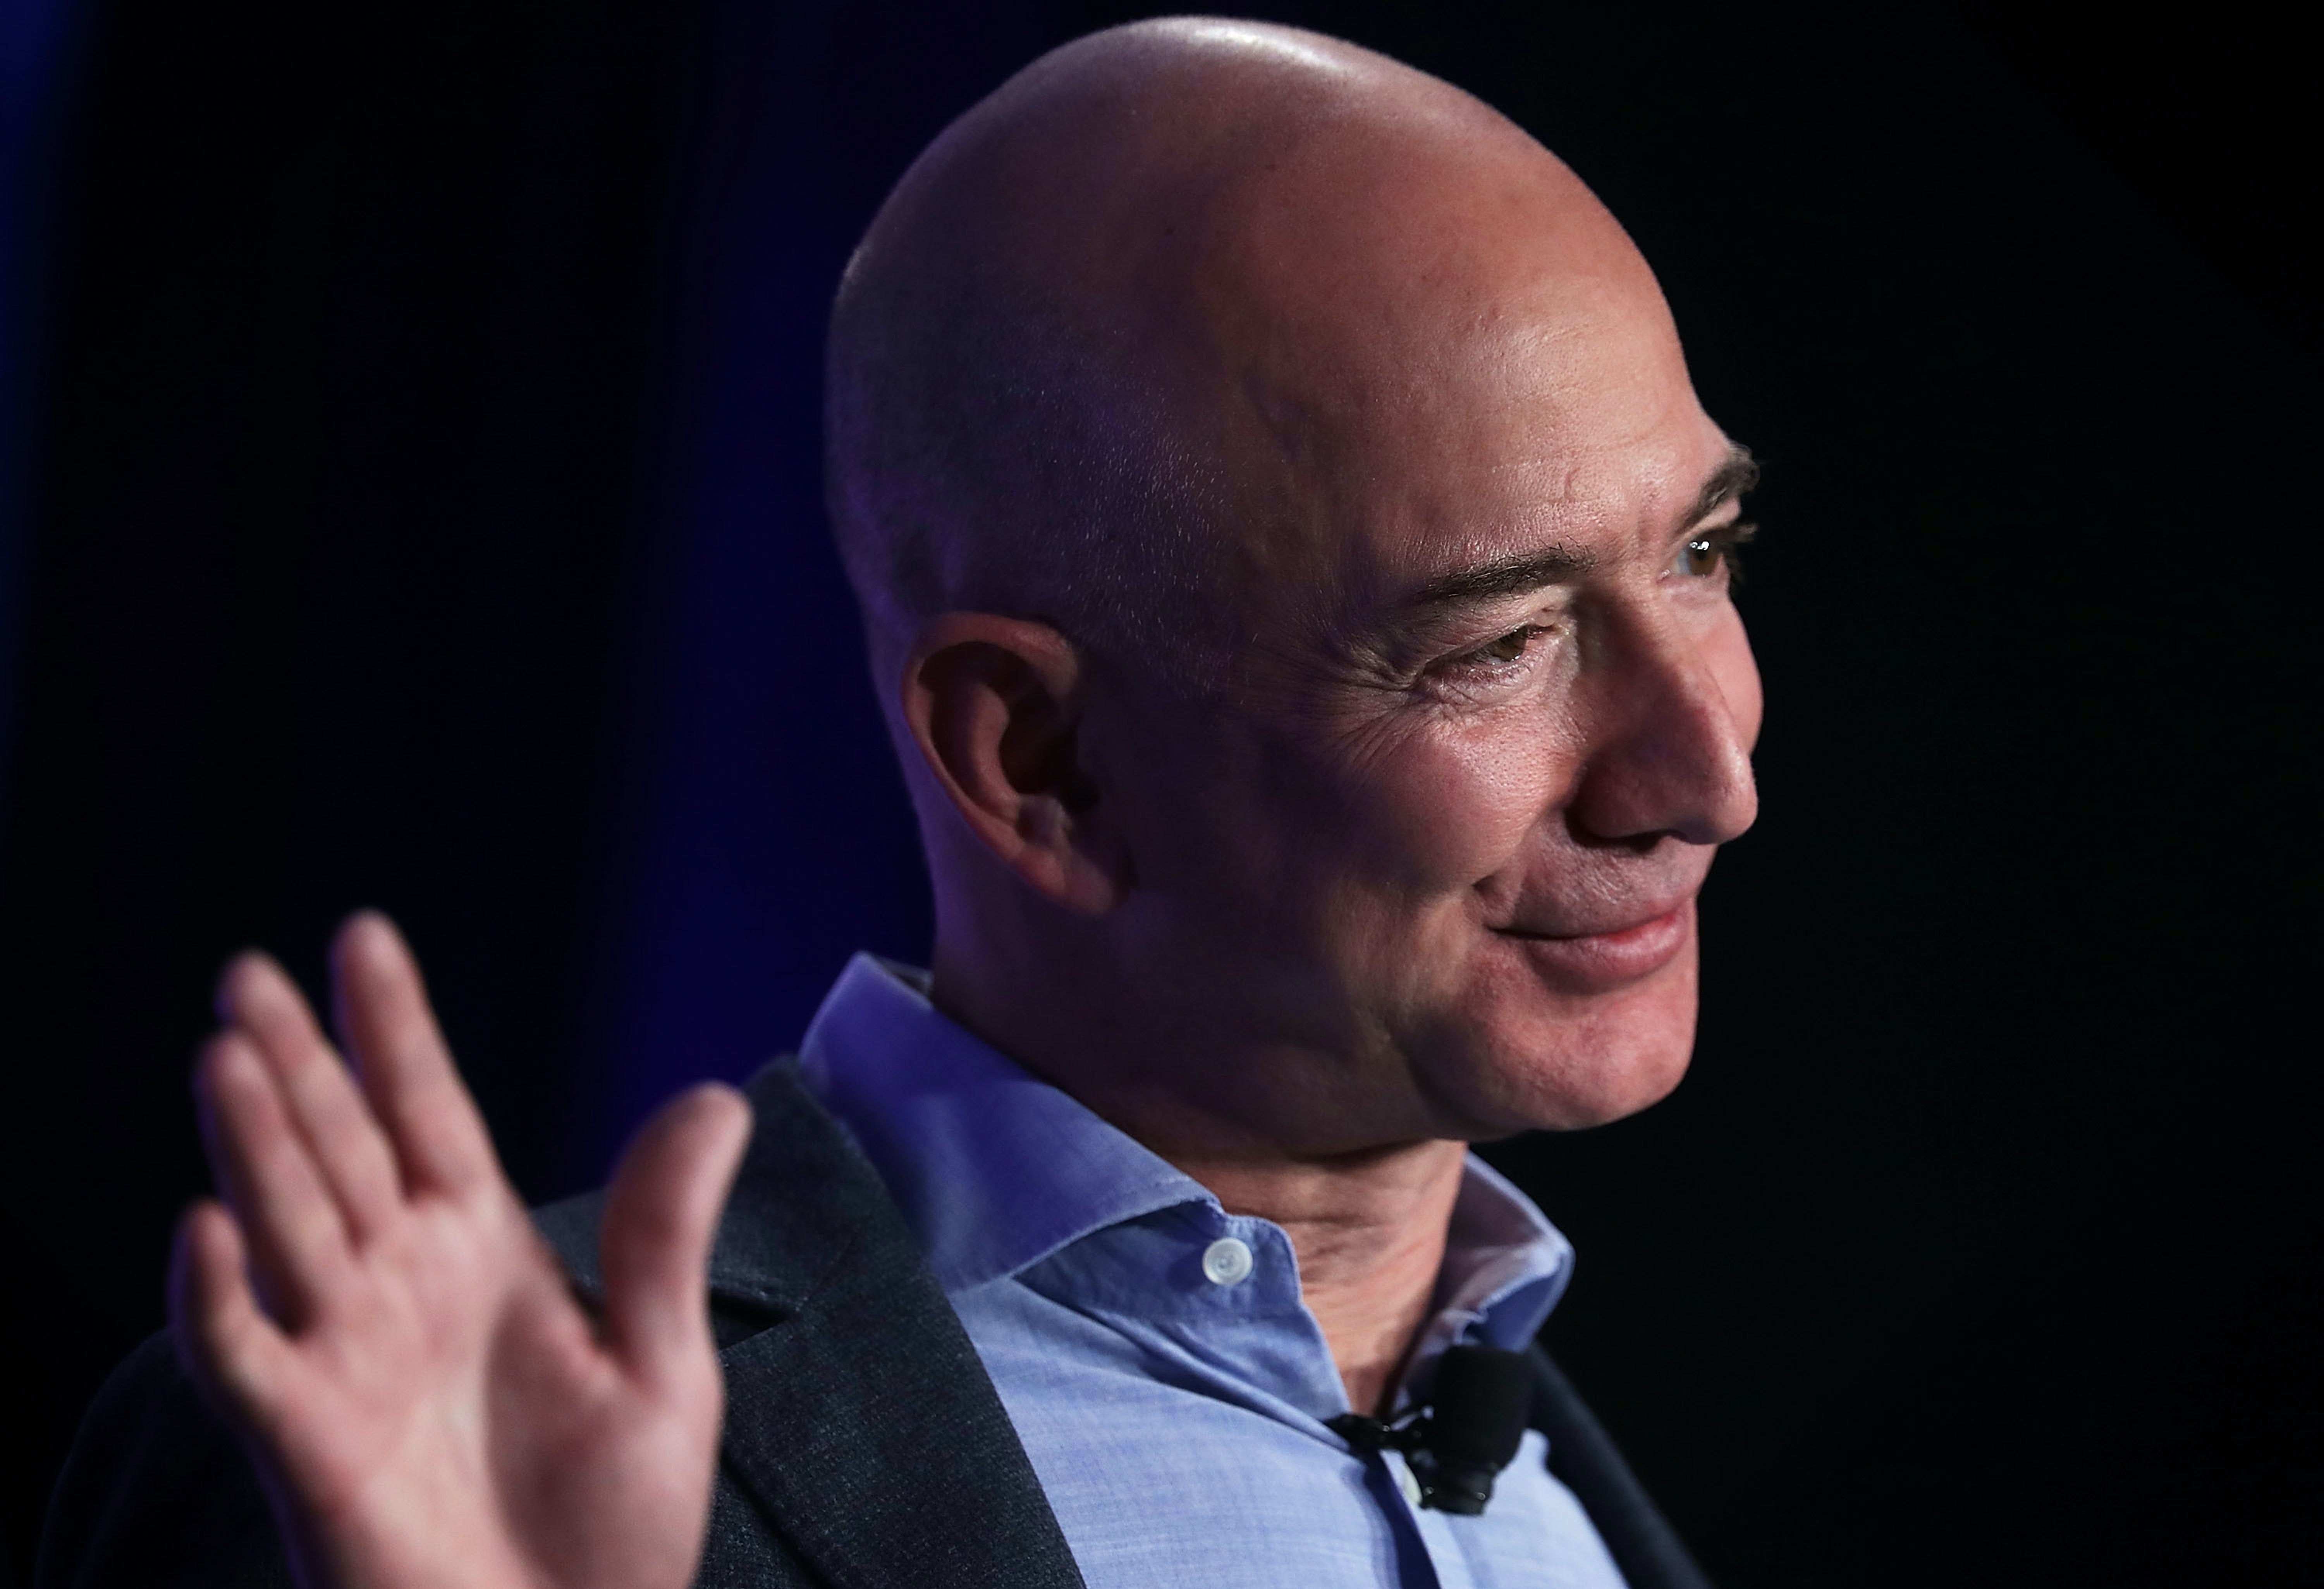 Jeff bezos founder and chief executive of amazon com and owner of the